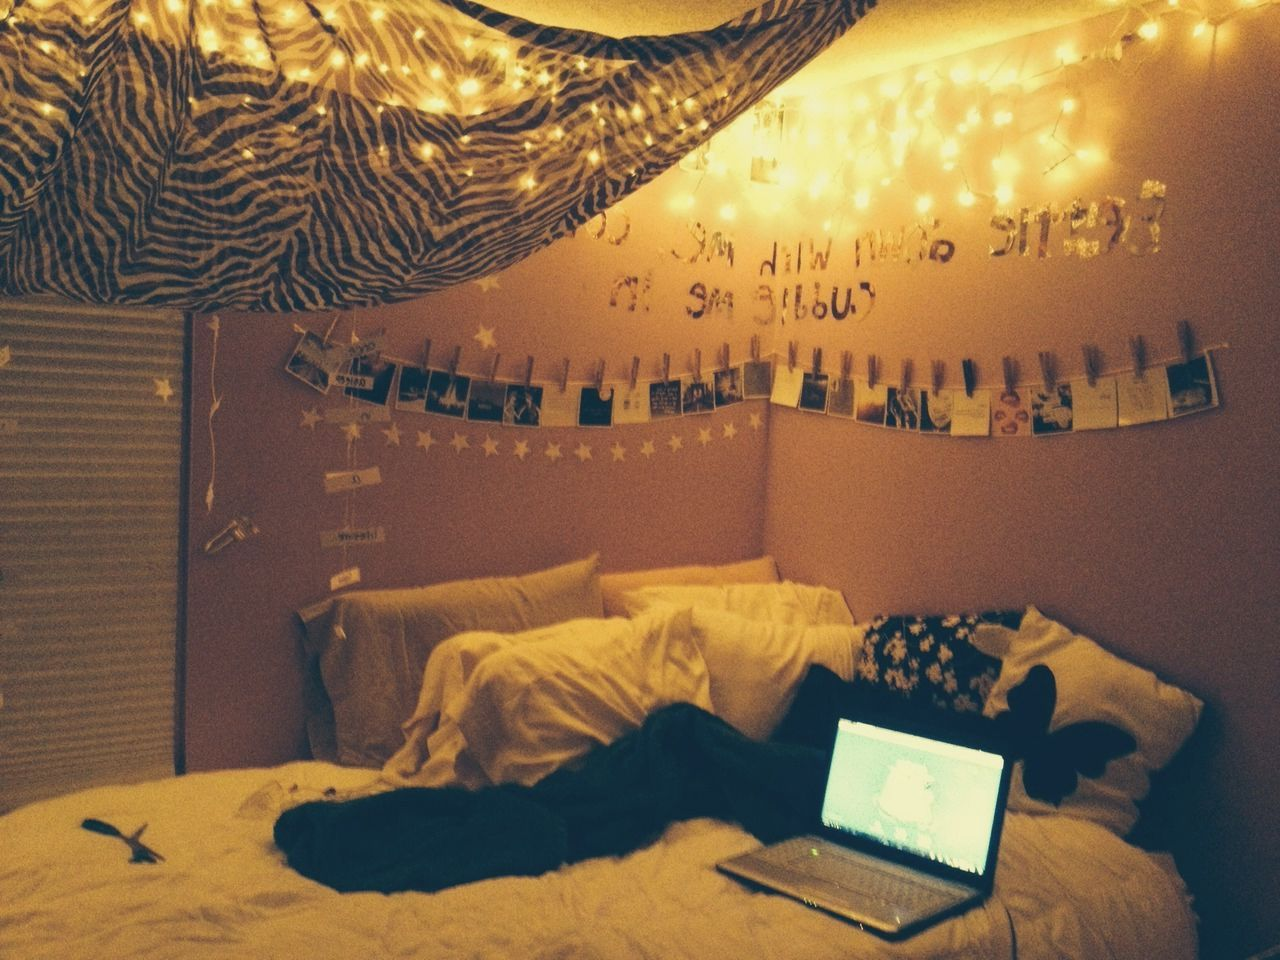 Cool bedroom ideas for teenage girls tumblr - Bedroom Ideas For Teenage Girls Tumblr Google Search